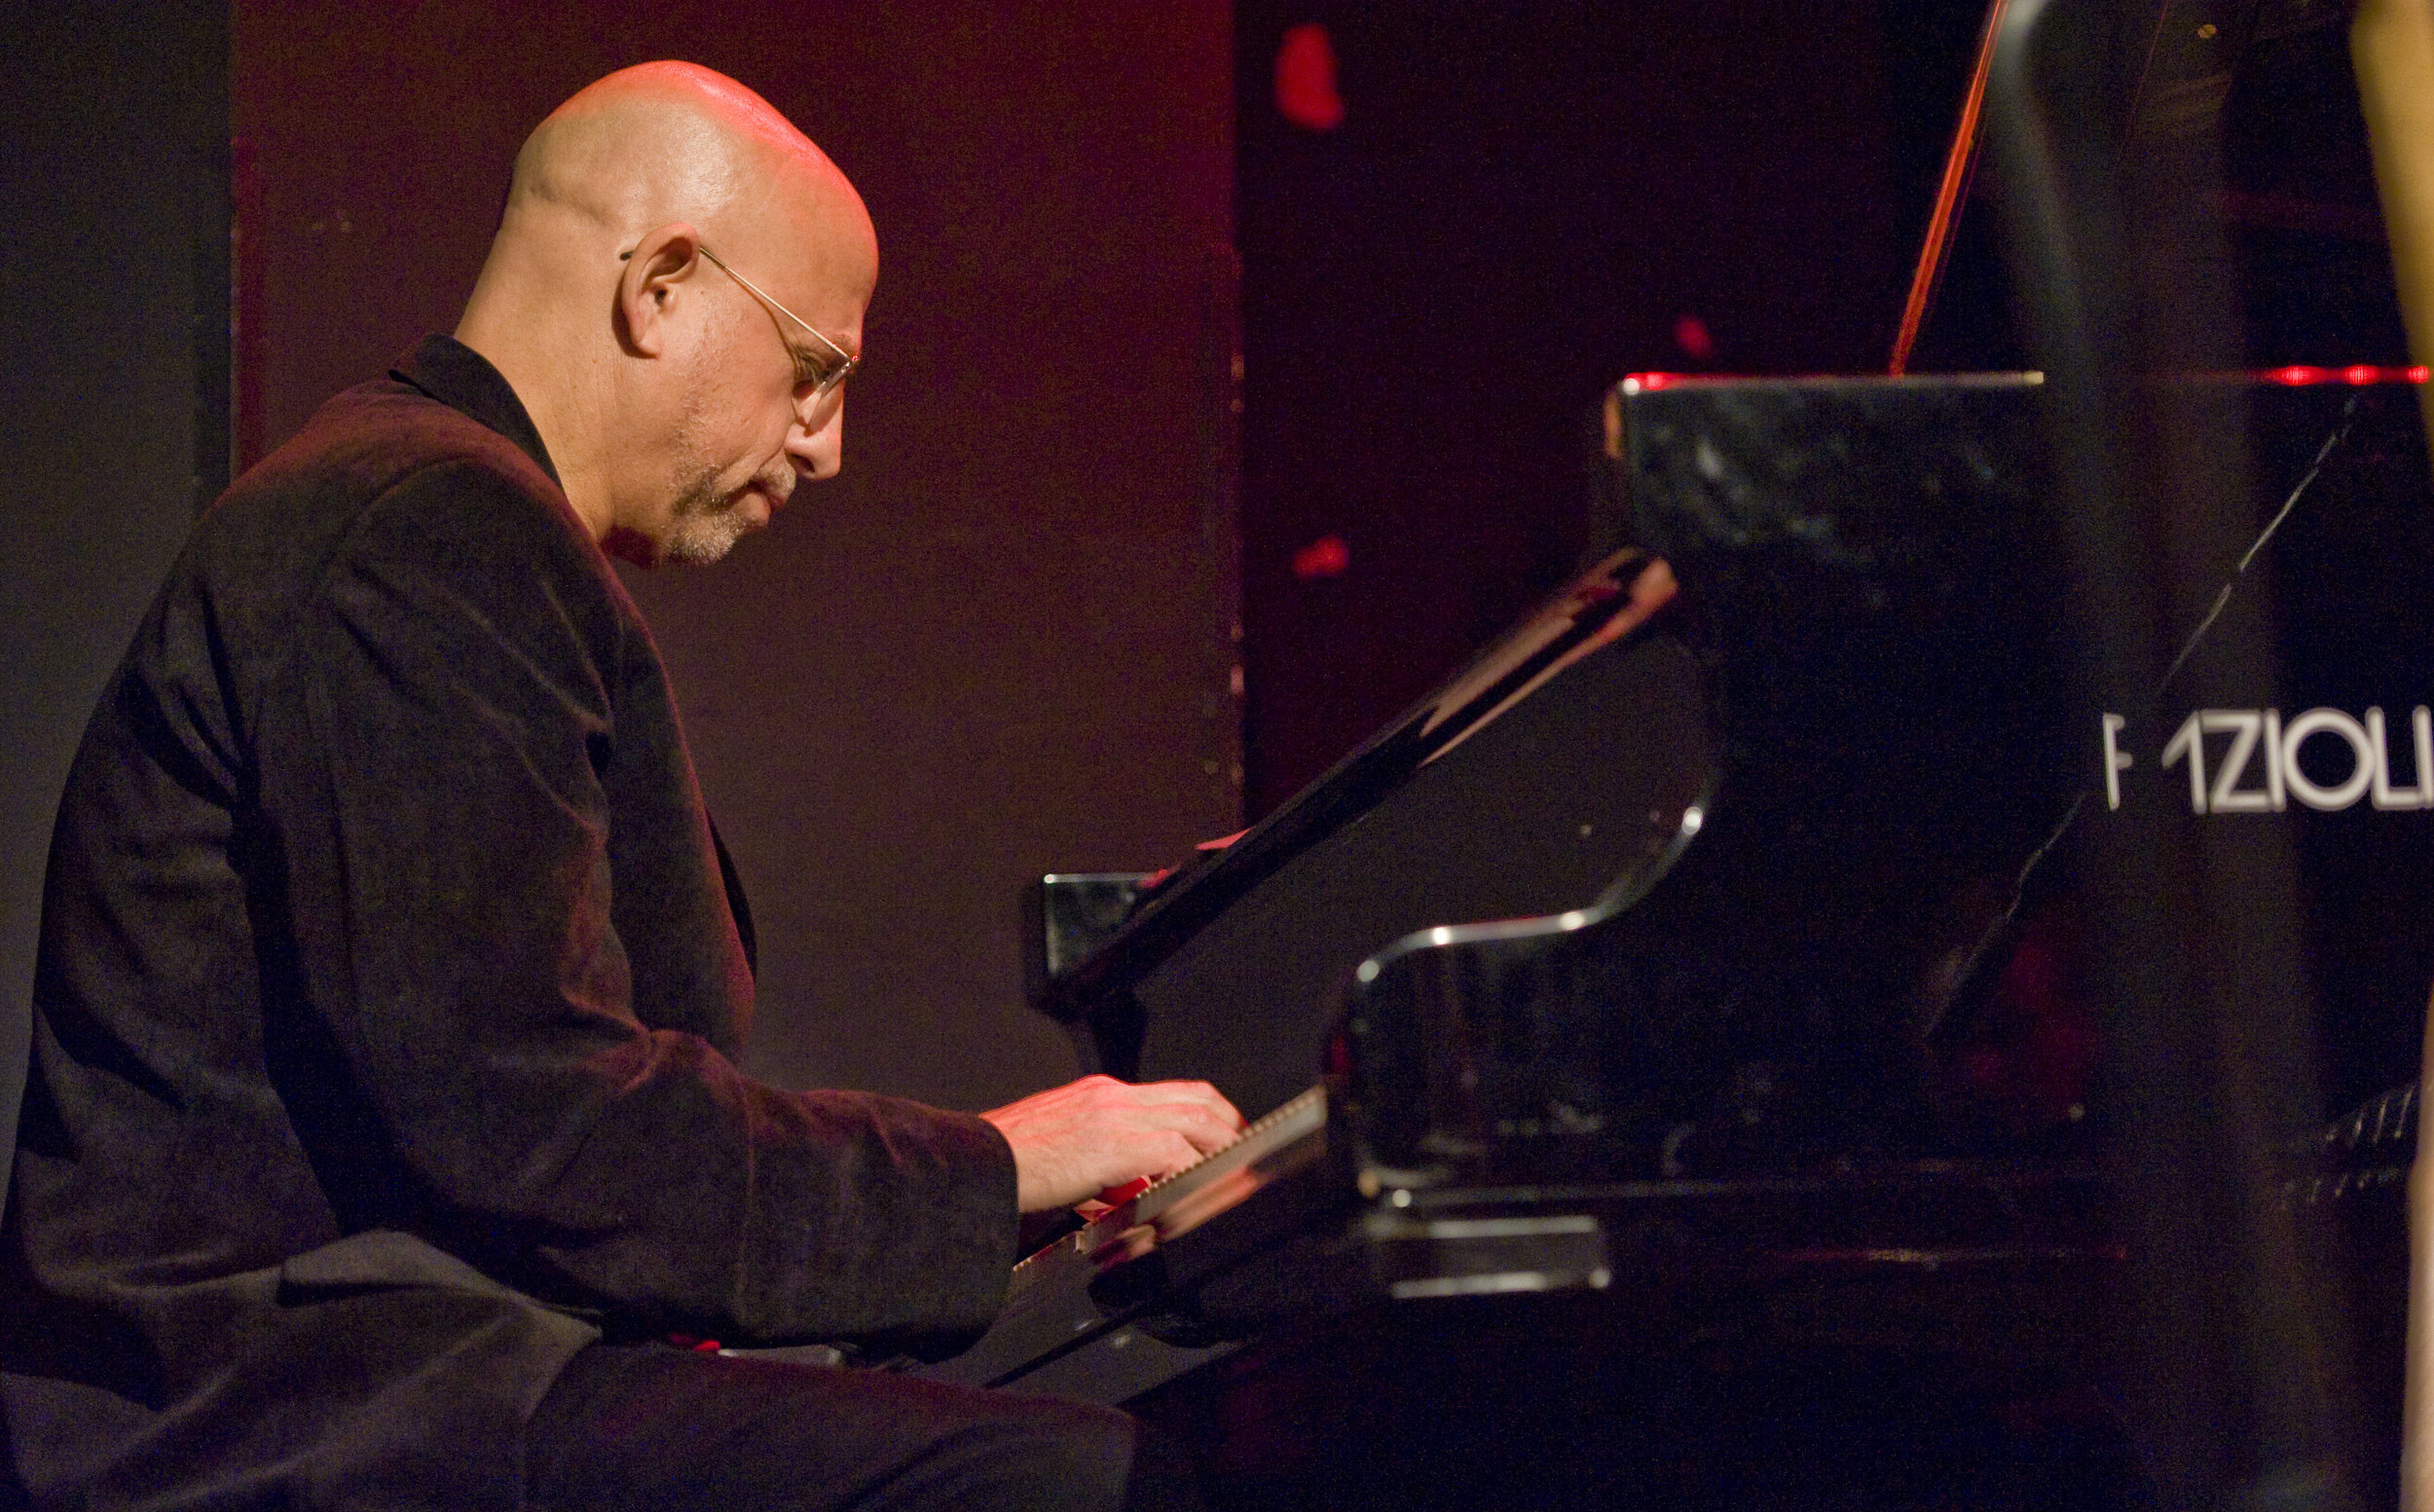 larry_porter_piano.jpg